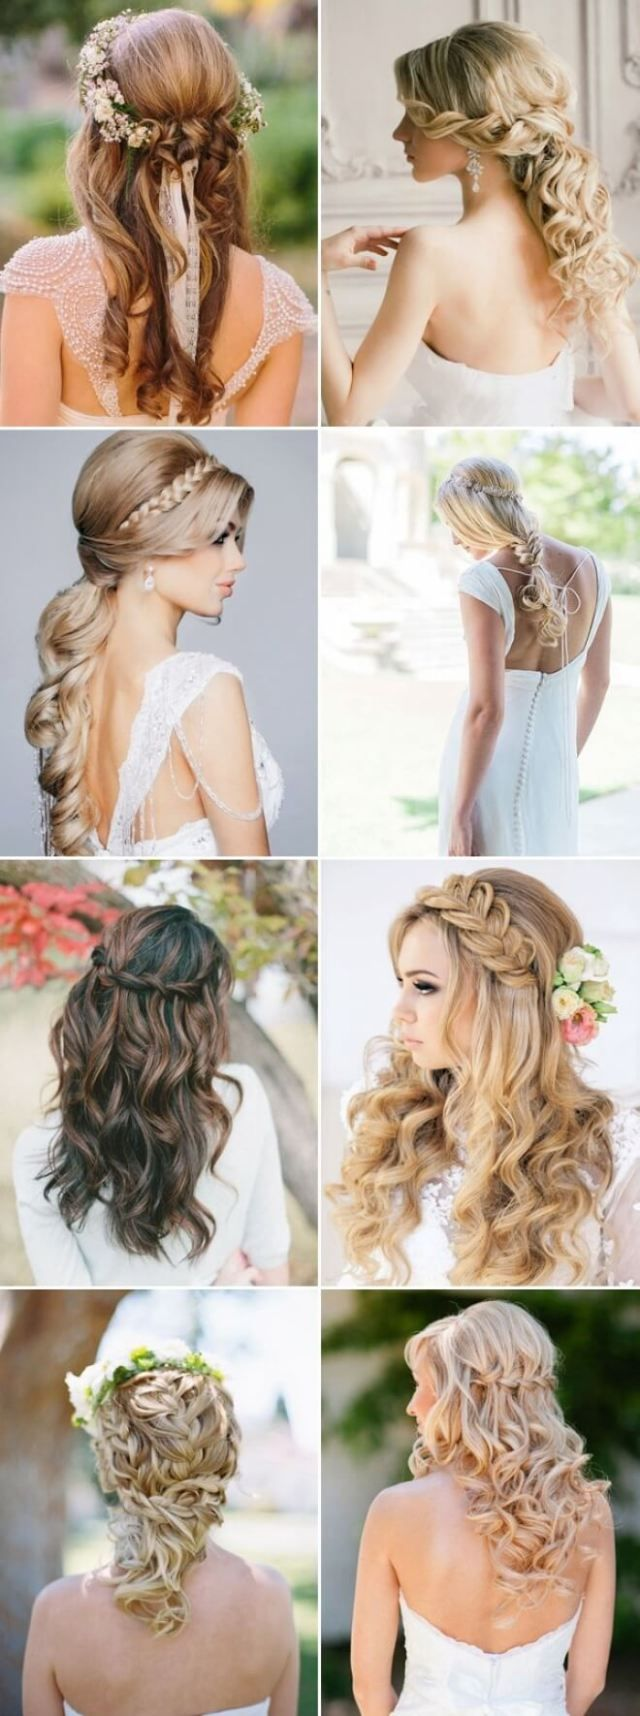 31 Beautiful Long Half Up Wedding Hairstyles | Wedding and Weddings